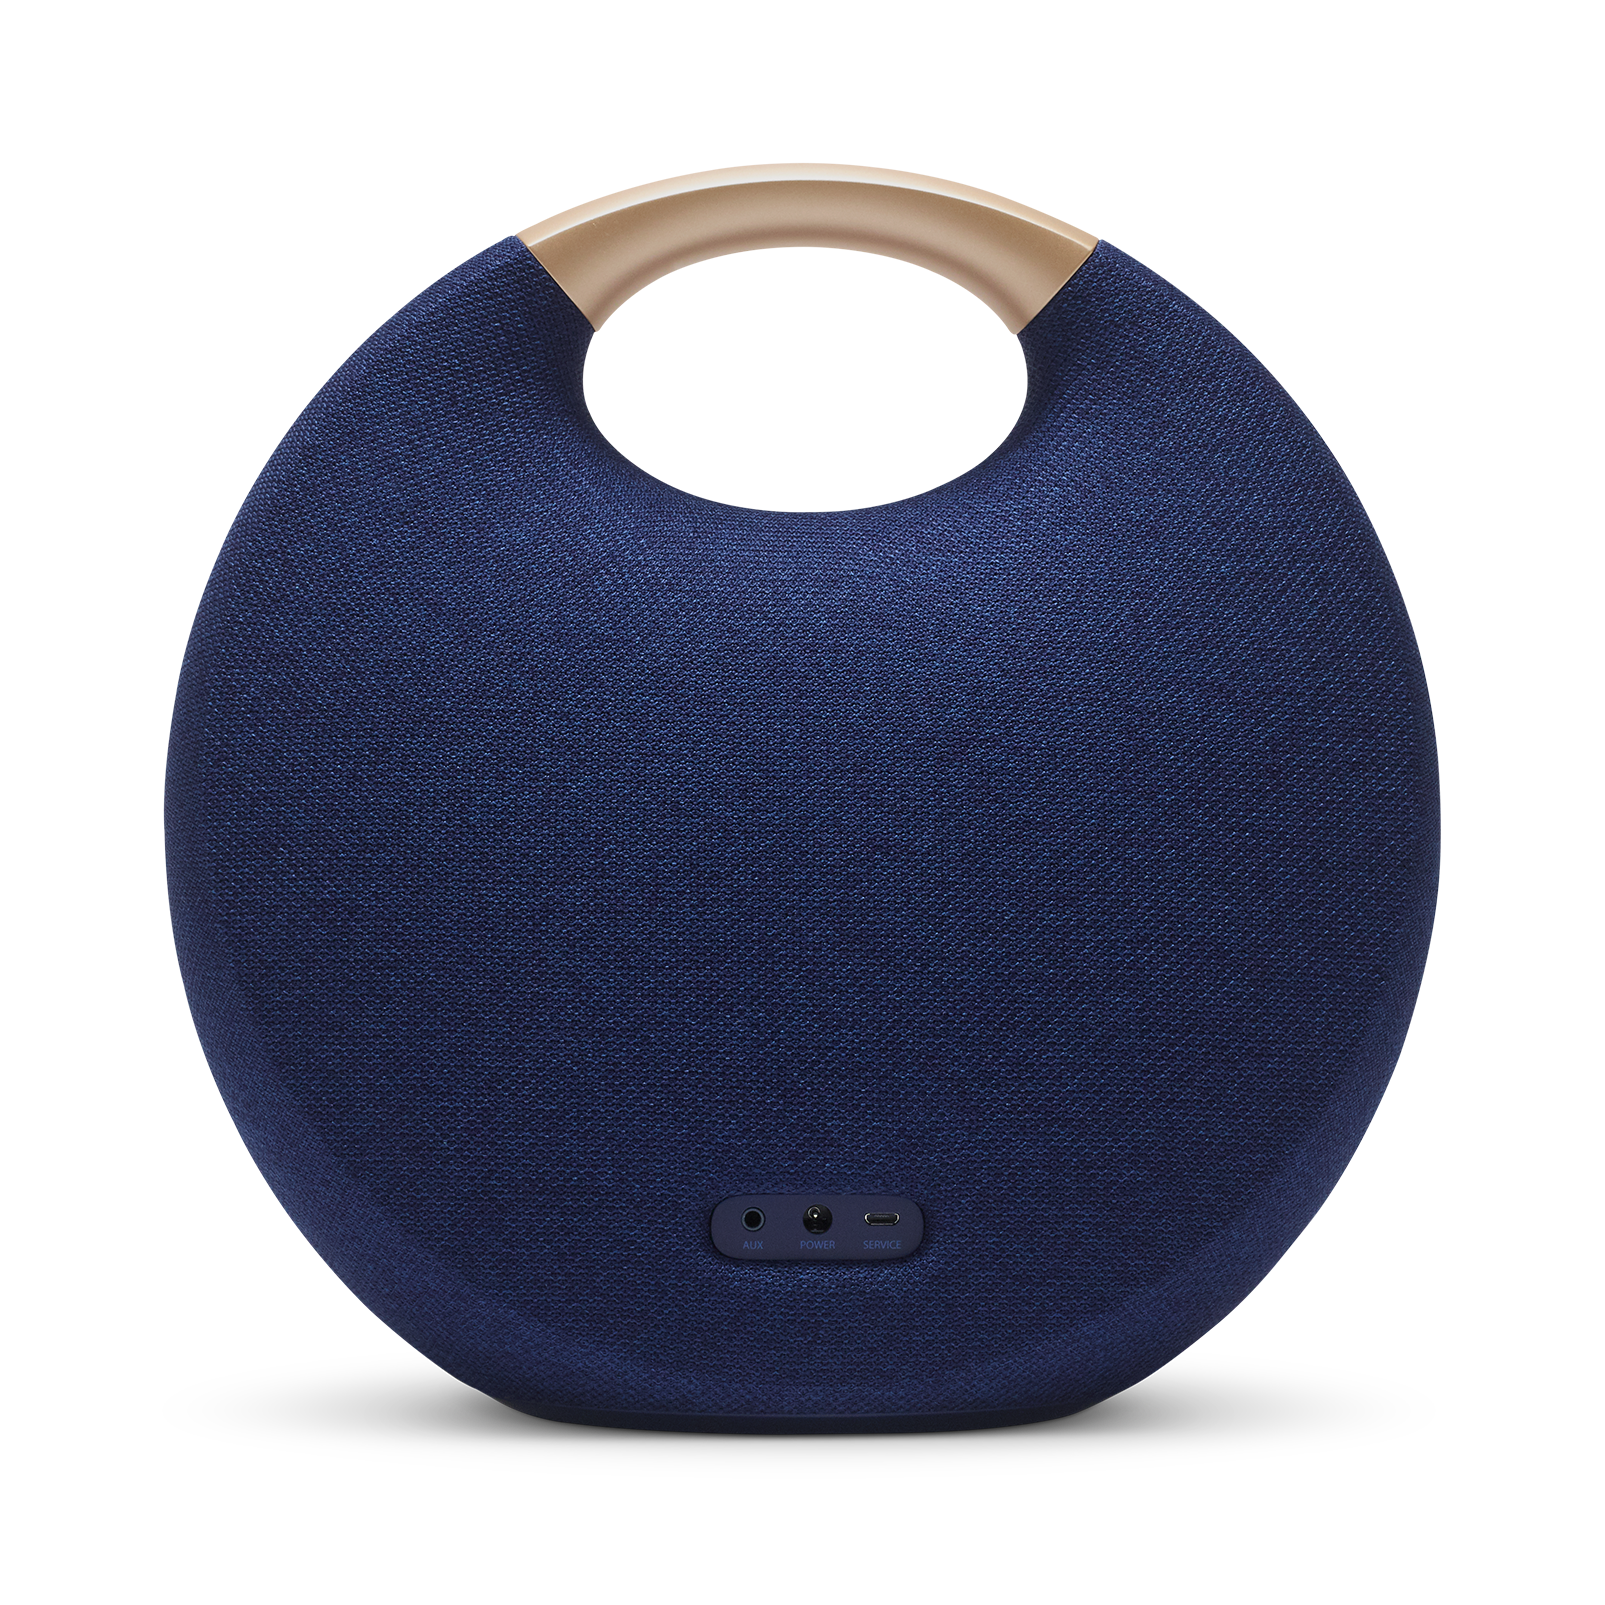 Onyx Studio 5 - Blue - Portable Bluetooth Speaker - Back